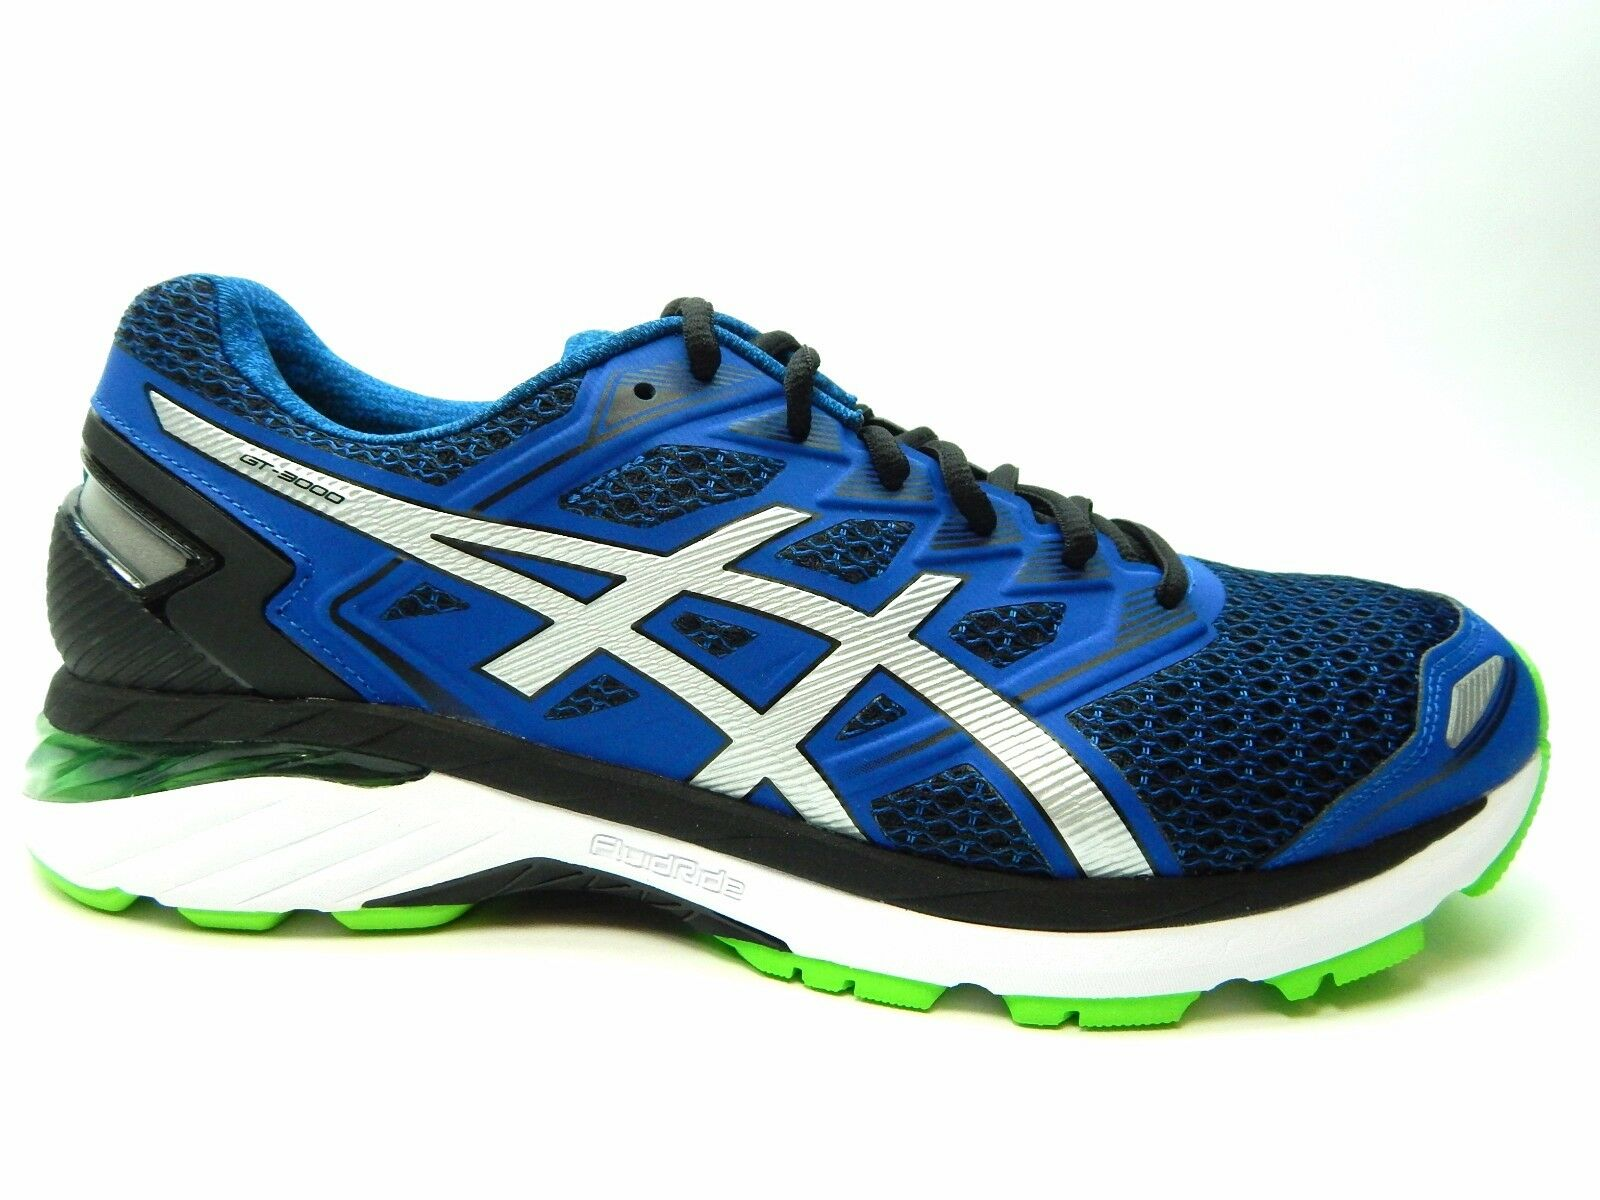 ASICS GT 3000 5 (2E) Negro Plata Imperial T706N 9093 hombres zapatos